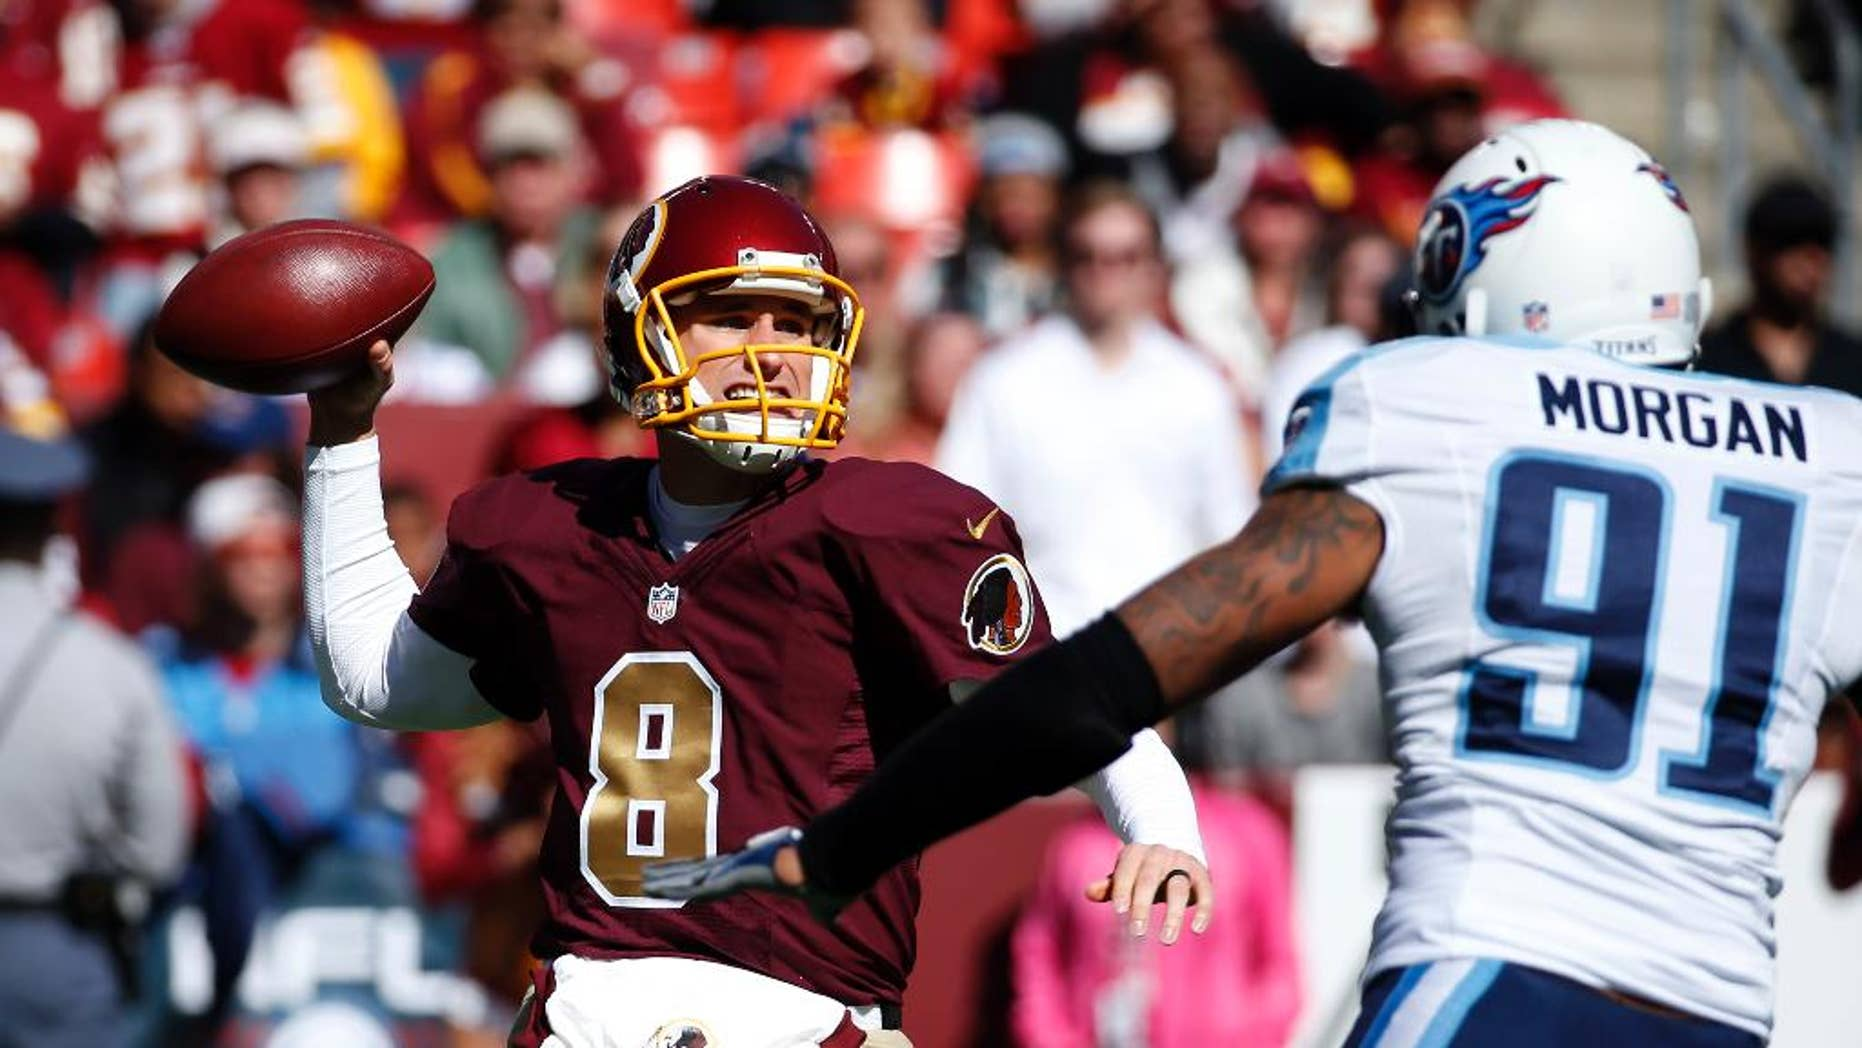 Washington Redskins quarterback Kirk Cousins (8) throws under pressure from Tennessee Titans outside linebacker Derrick Morgan (91) during the first half of an NFL football game, Sunday, Oct. 19, 2014, in Landover, Md. (AP Photo/Alex Brandon)